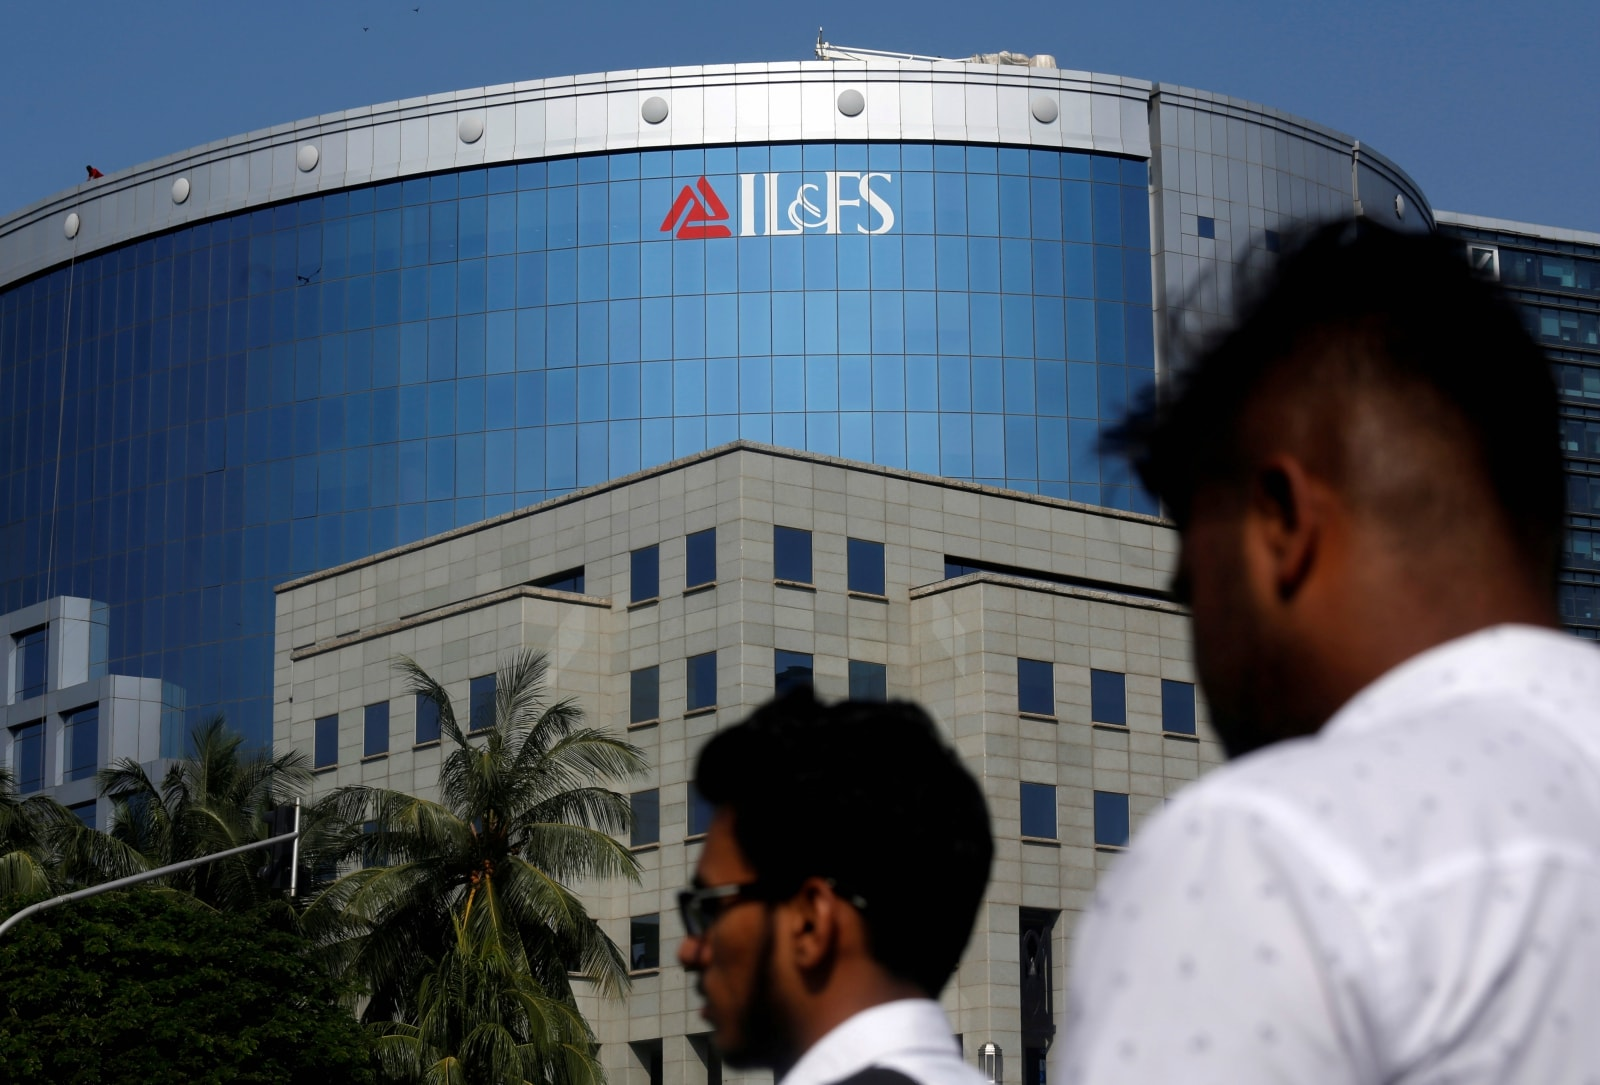 The Reserve Bank of India (RBI) has asked lenders of Infrastructure Leasing and Financial Services Ltd (IL&FS) to classify loans extended to the bankrupt shadow banking firm as non-performing, sources told Reuters. (Reuters)